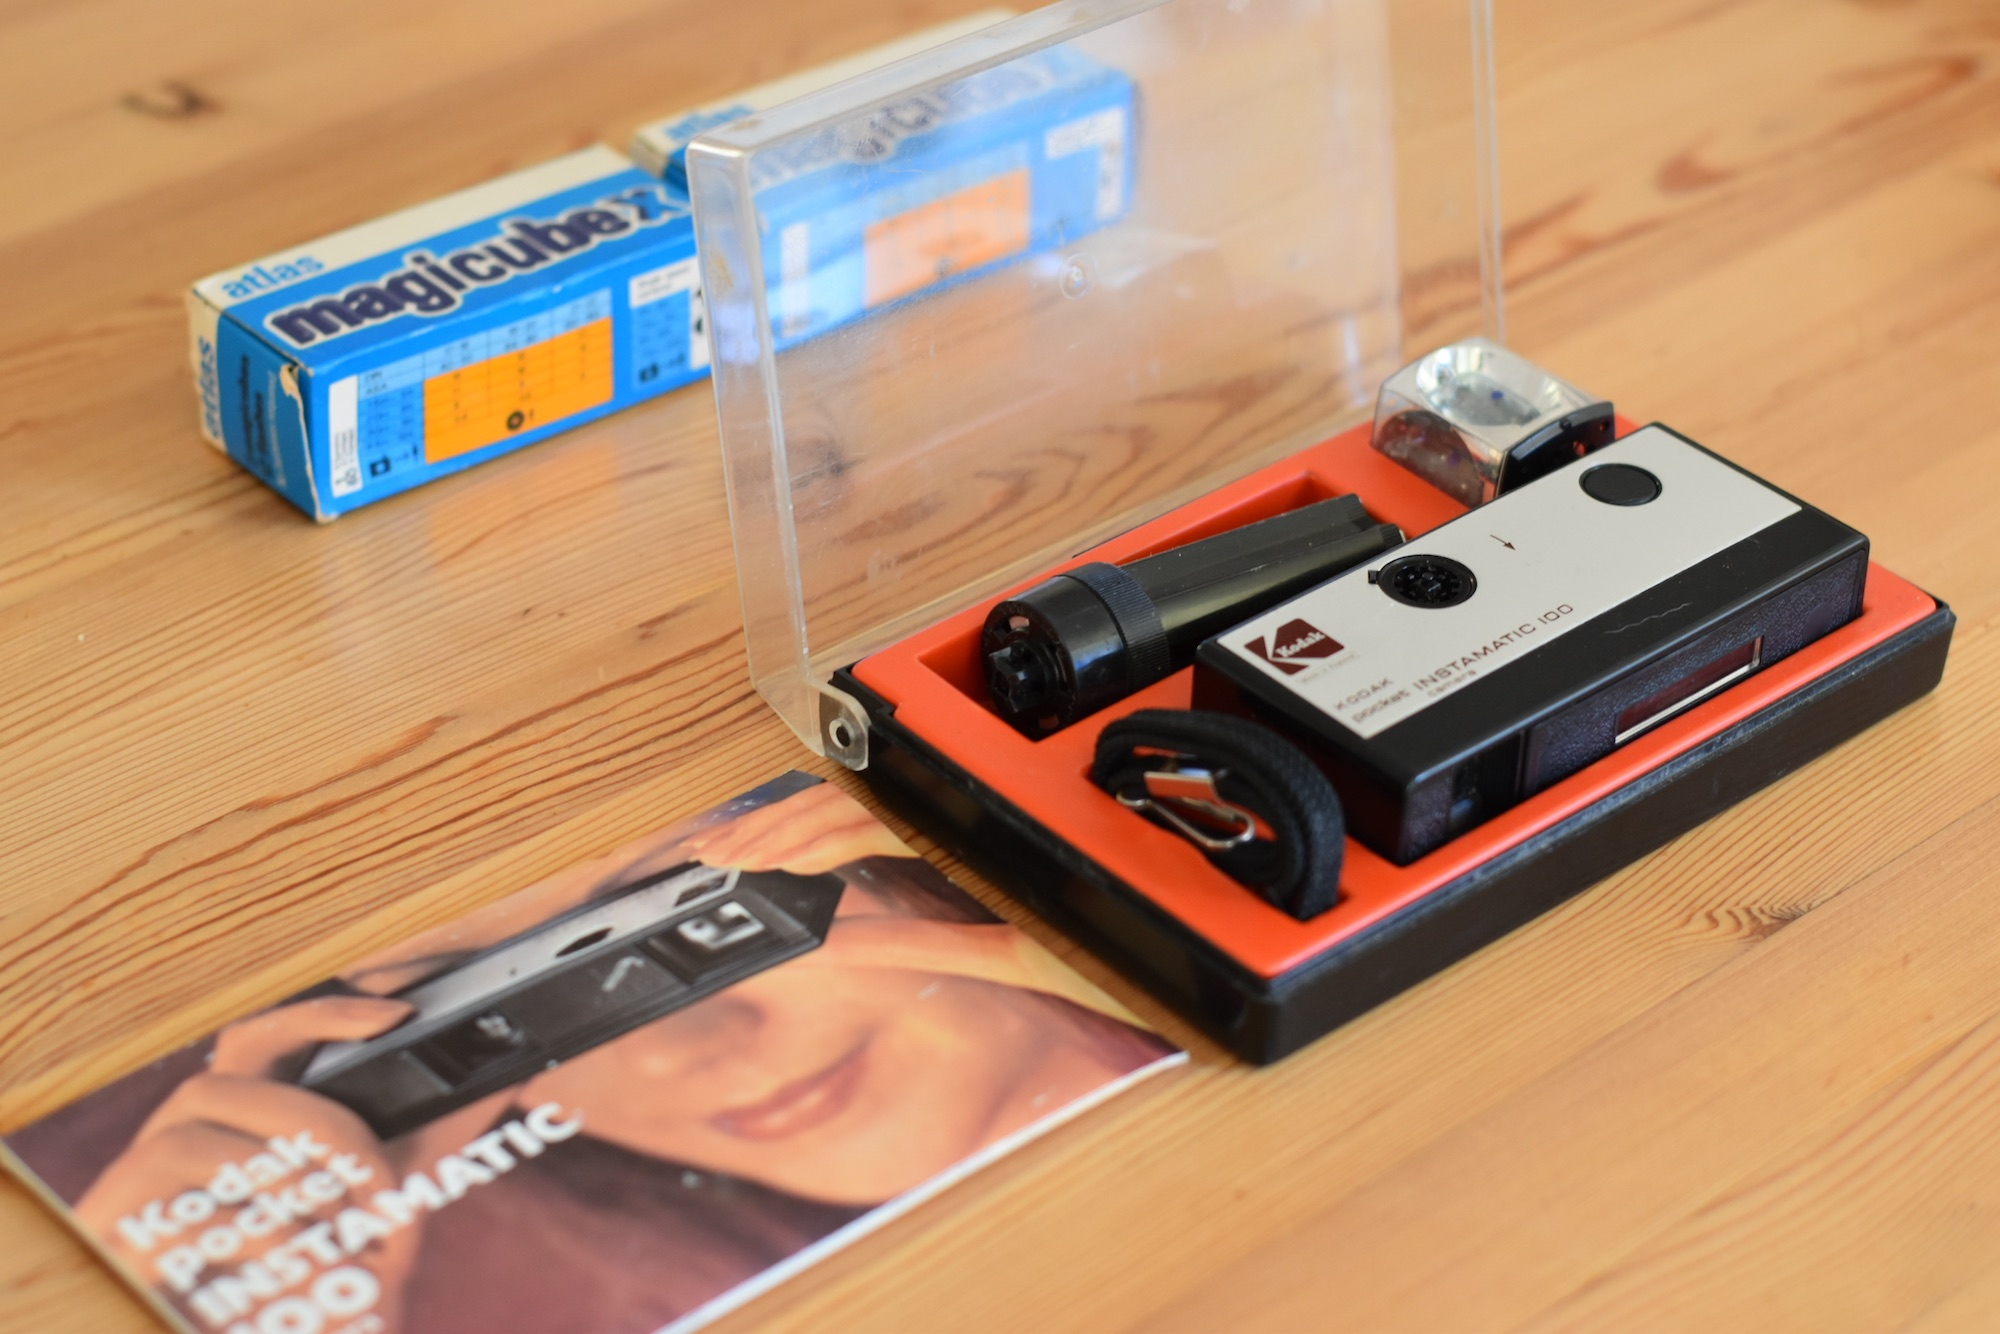 Kodak Instamatic Pocket 100 in original plastic box. Box top is clear, box base is black with a red plastic insert that holds the camera components. Manual is on table in front of box, has a picture of a young woman holding the camera up to her eye